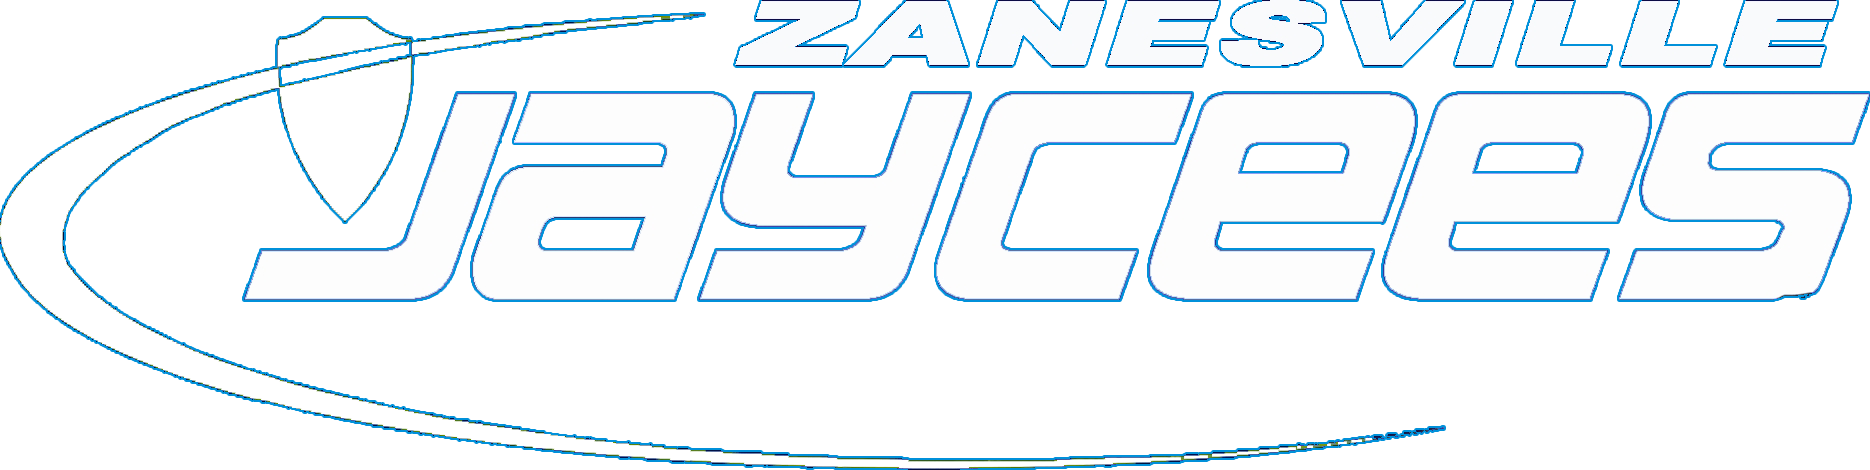 Zanesville-Jaycess-Community-Benefit-Organization